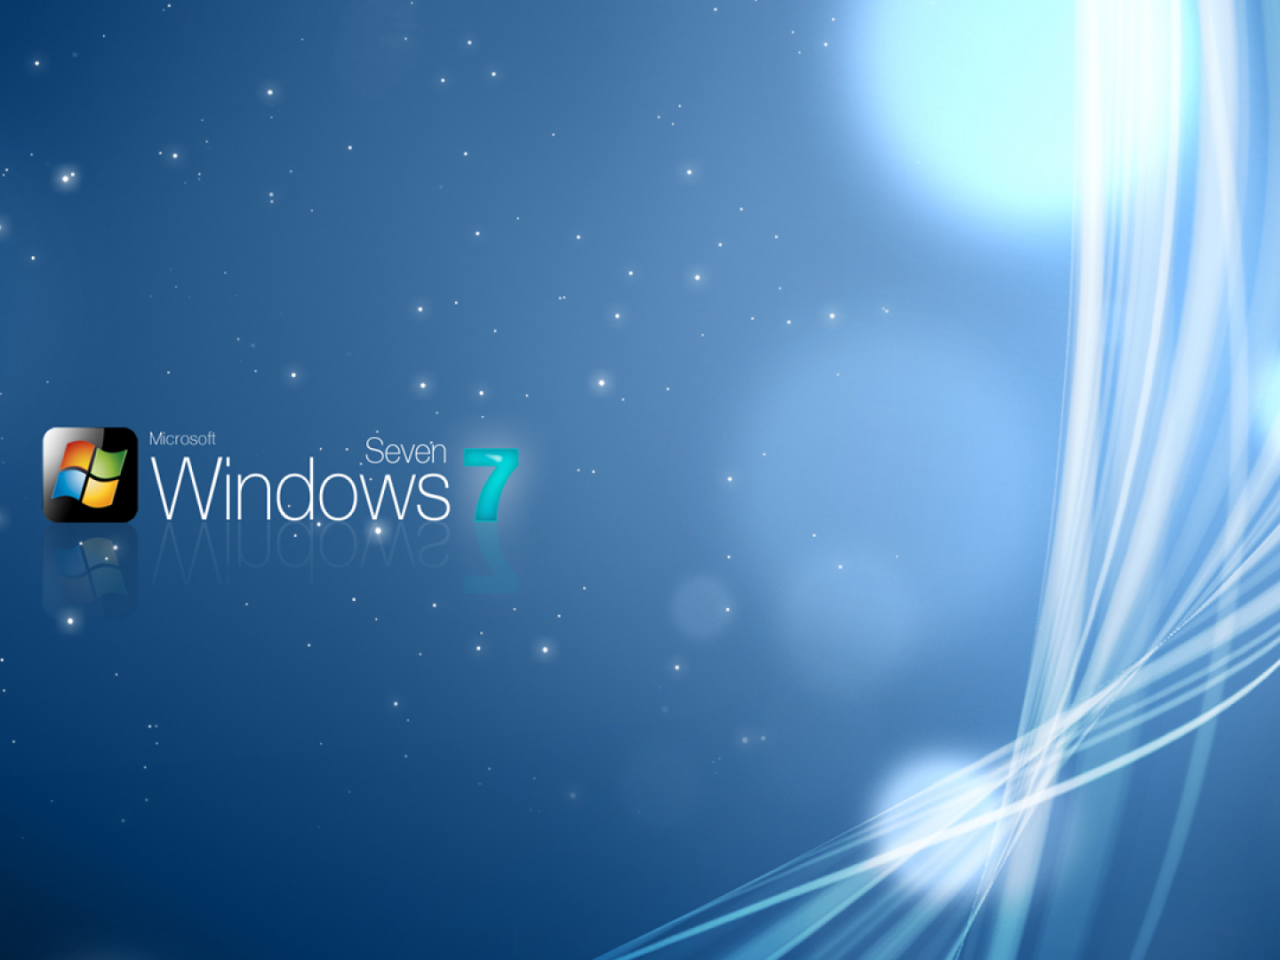 windows 7 sparkly wallpaper - hd wallpapers